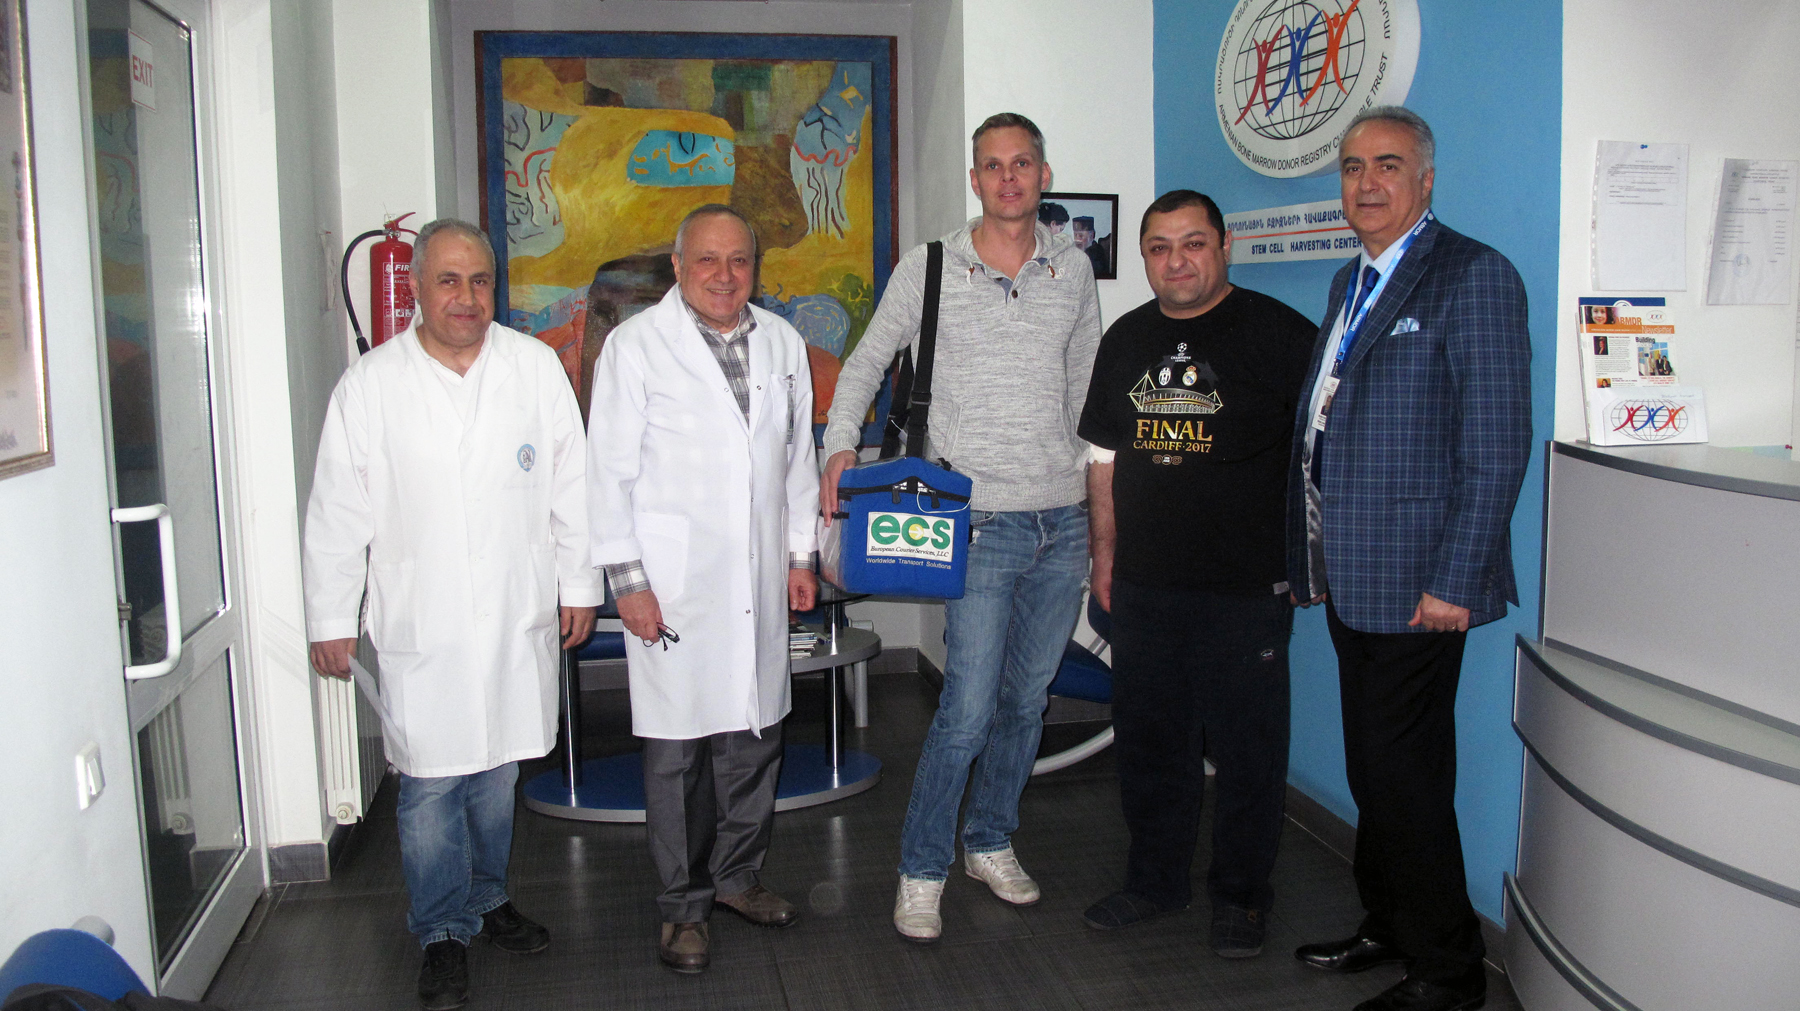 Iloyan, ABMDR Doctors, and Courier